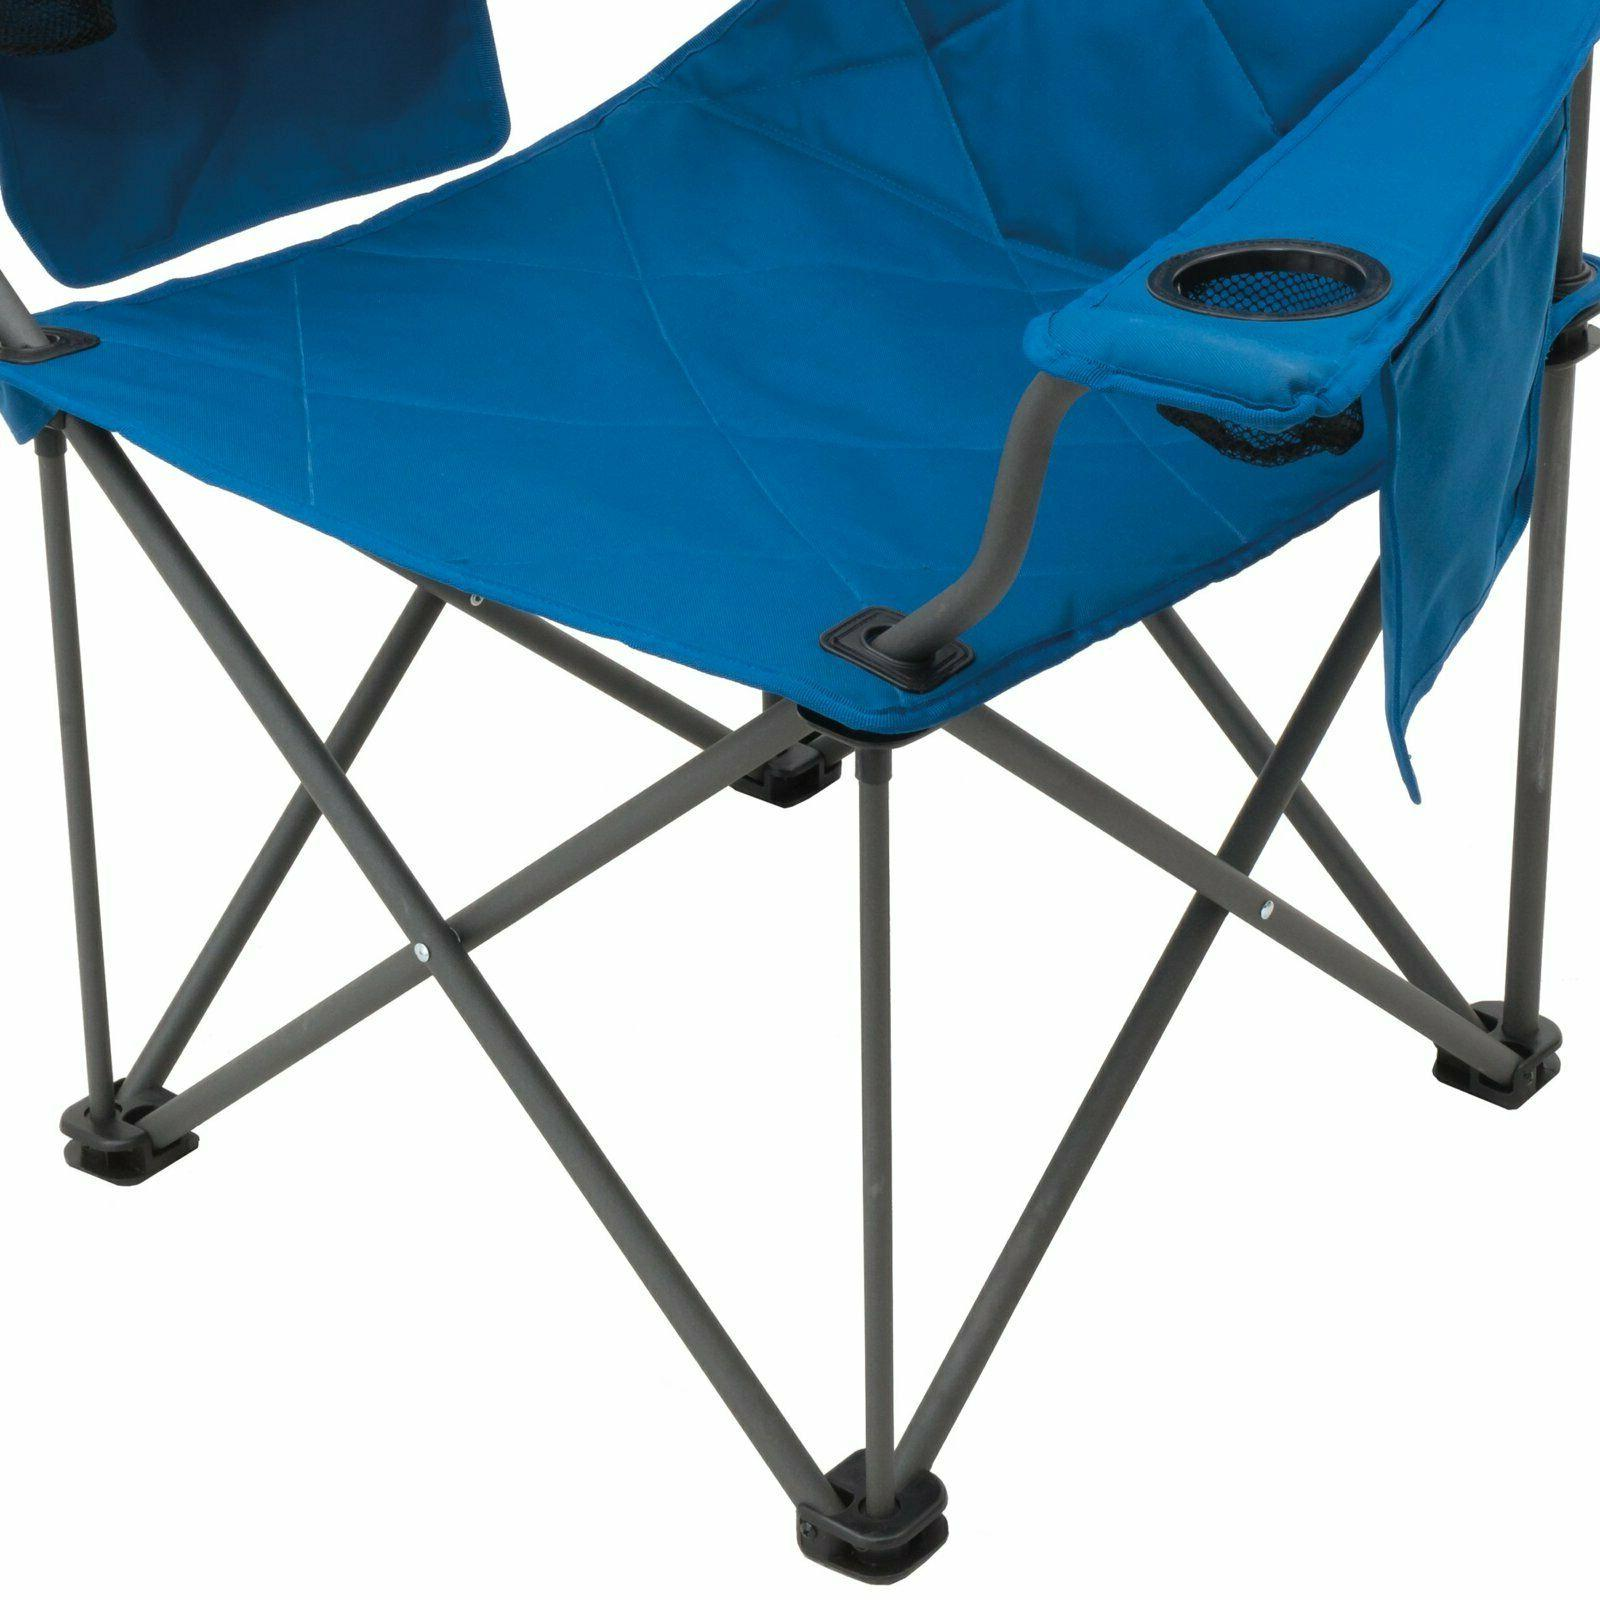 ALPS King Chair Travel Garden Seat